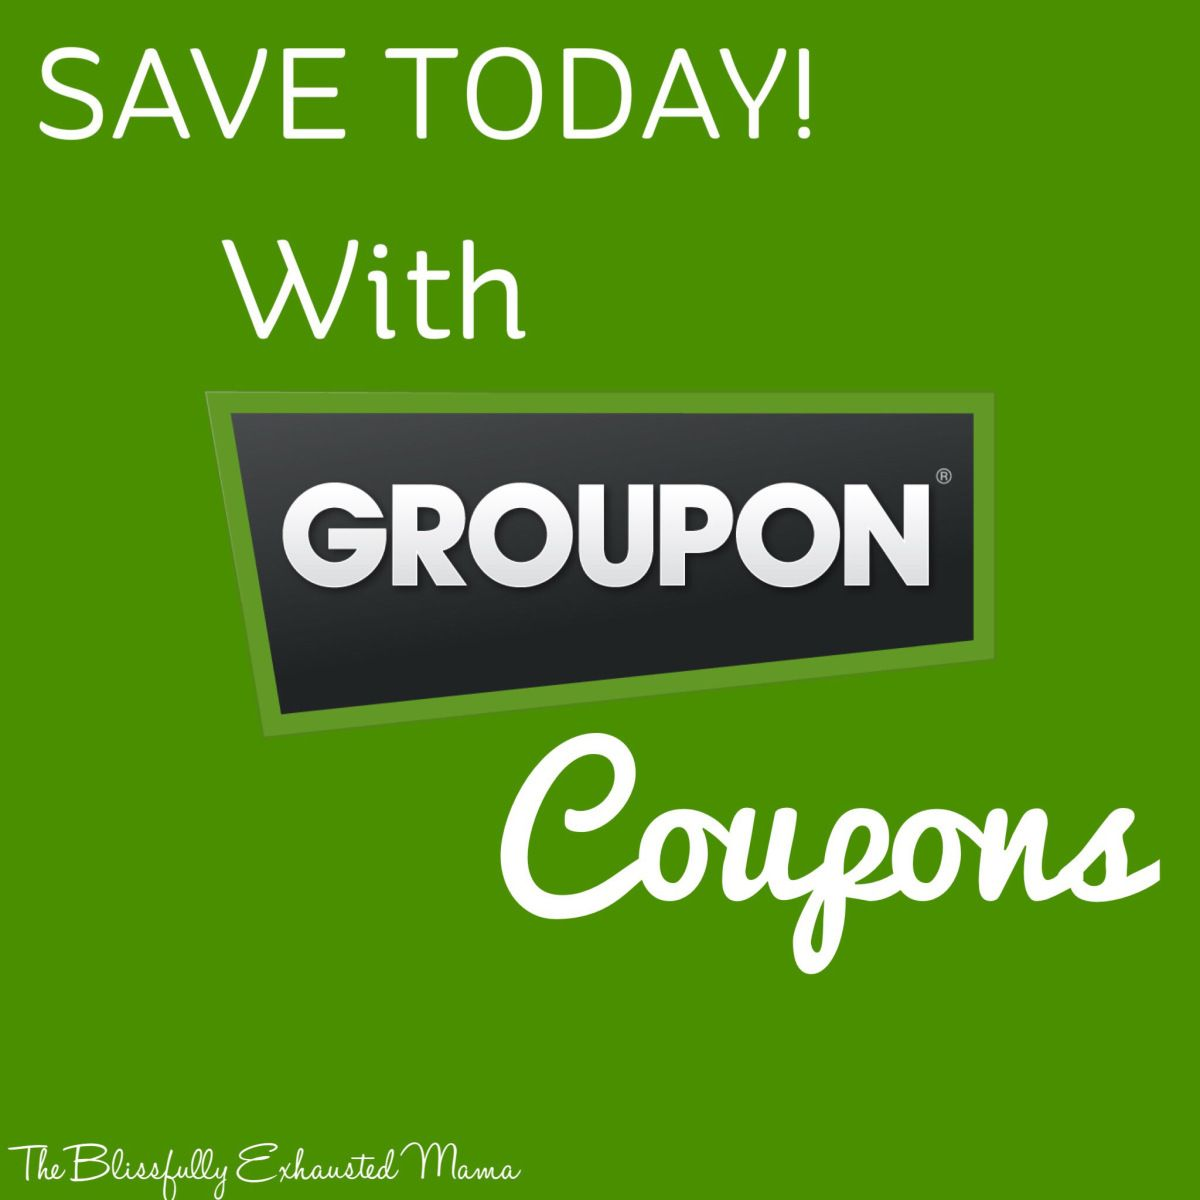 Save With Groupon Coupons The Blissfully Exhausted Mama Ad Groupon Groupon Coupons Saving Money Budgeting Tips